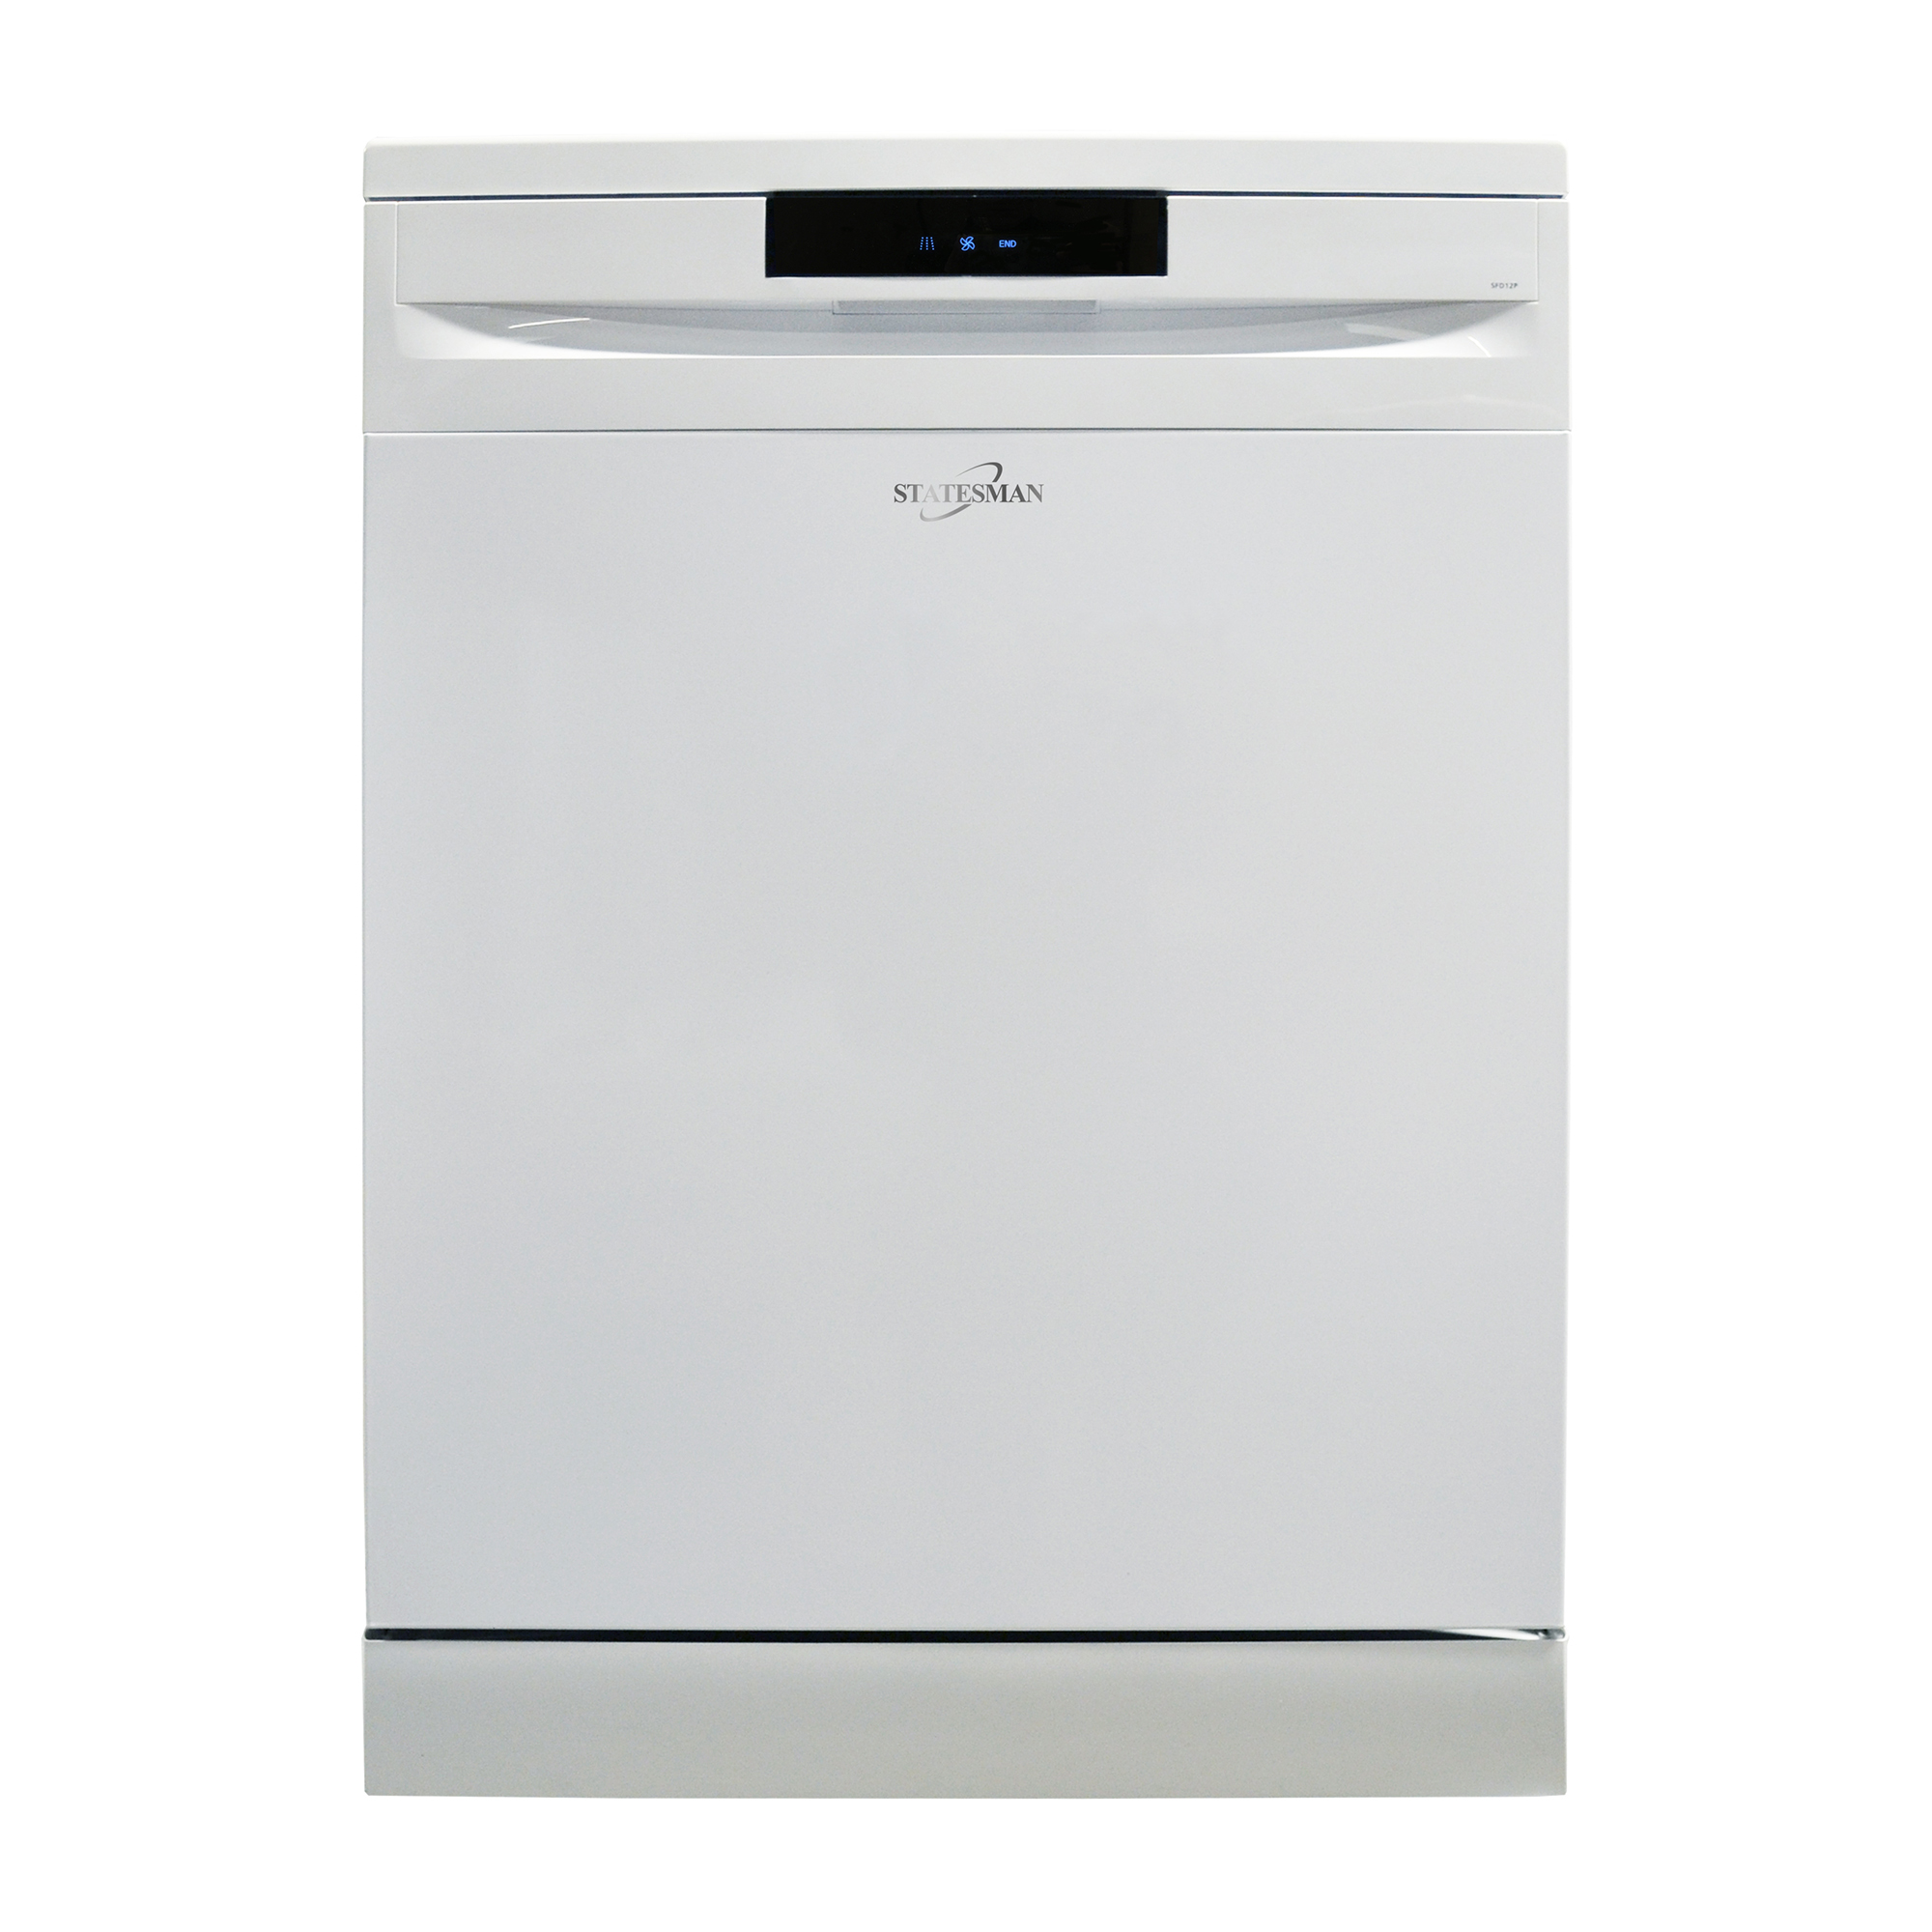 Kitchen Appliances Statesman Dishwasher A++ Rating Flood Protection 60cm White Ref SFD12P